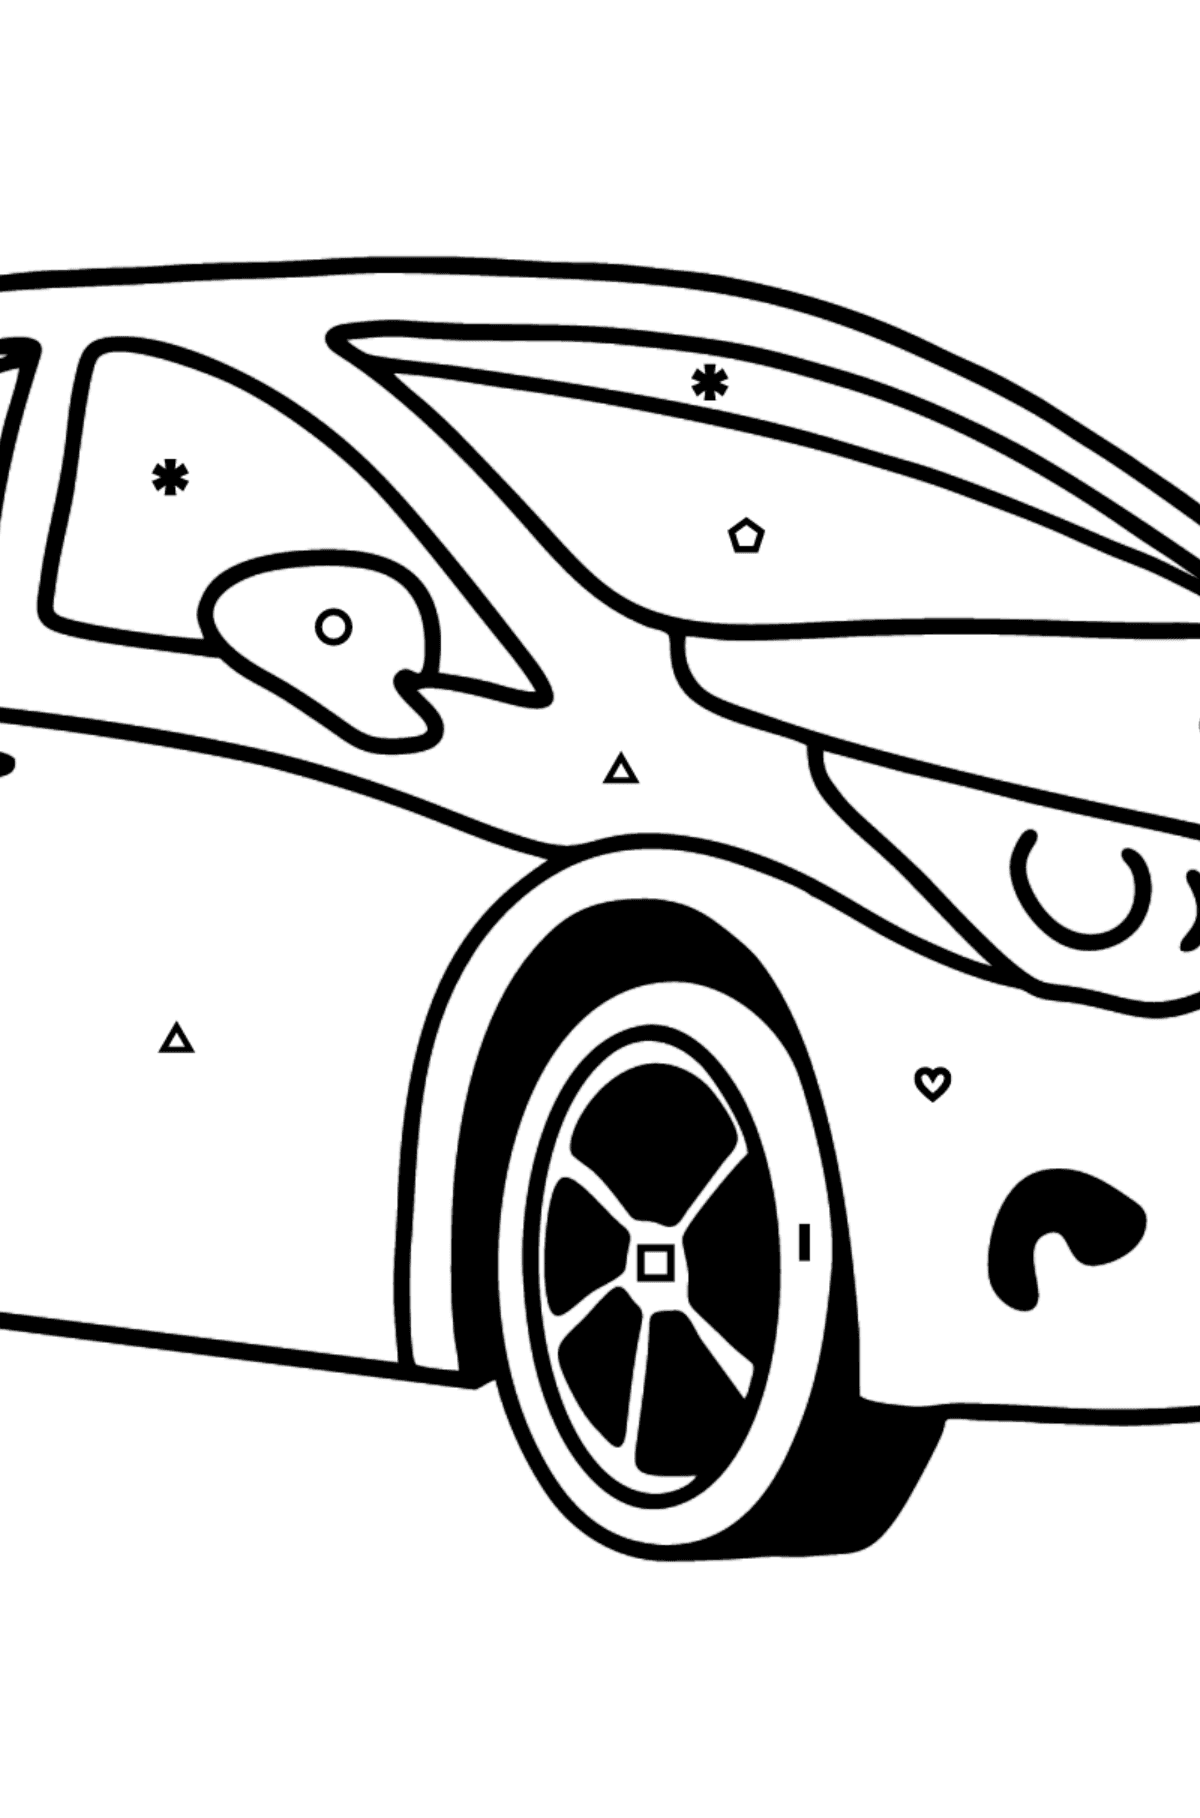 Toyota Avensis Car coloring page - Coloring by Symbols and Geometric Shapes for Kids